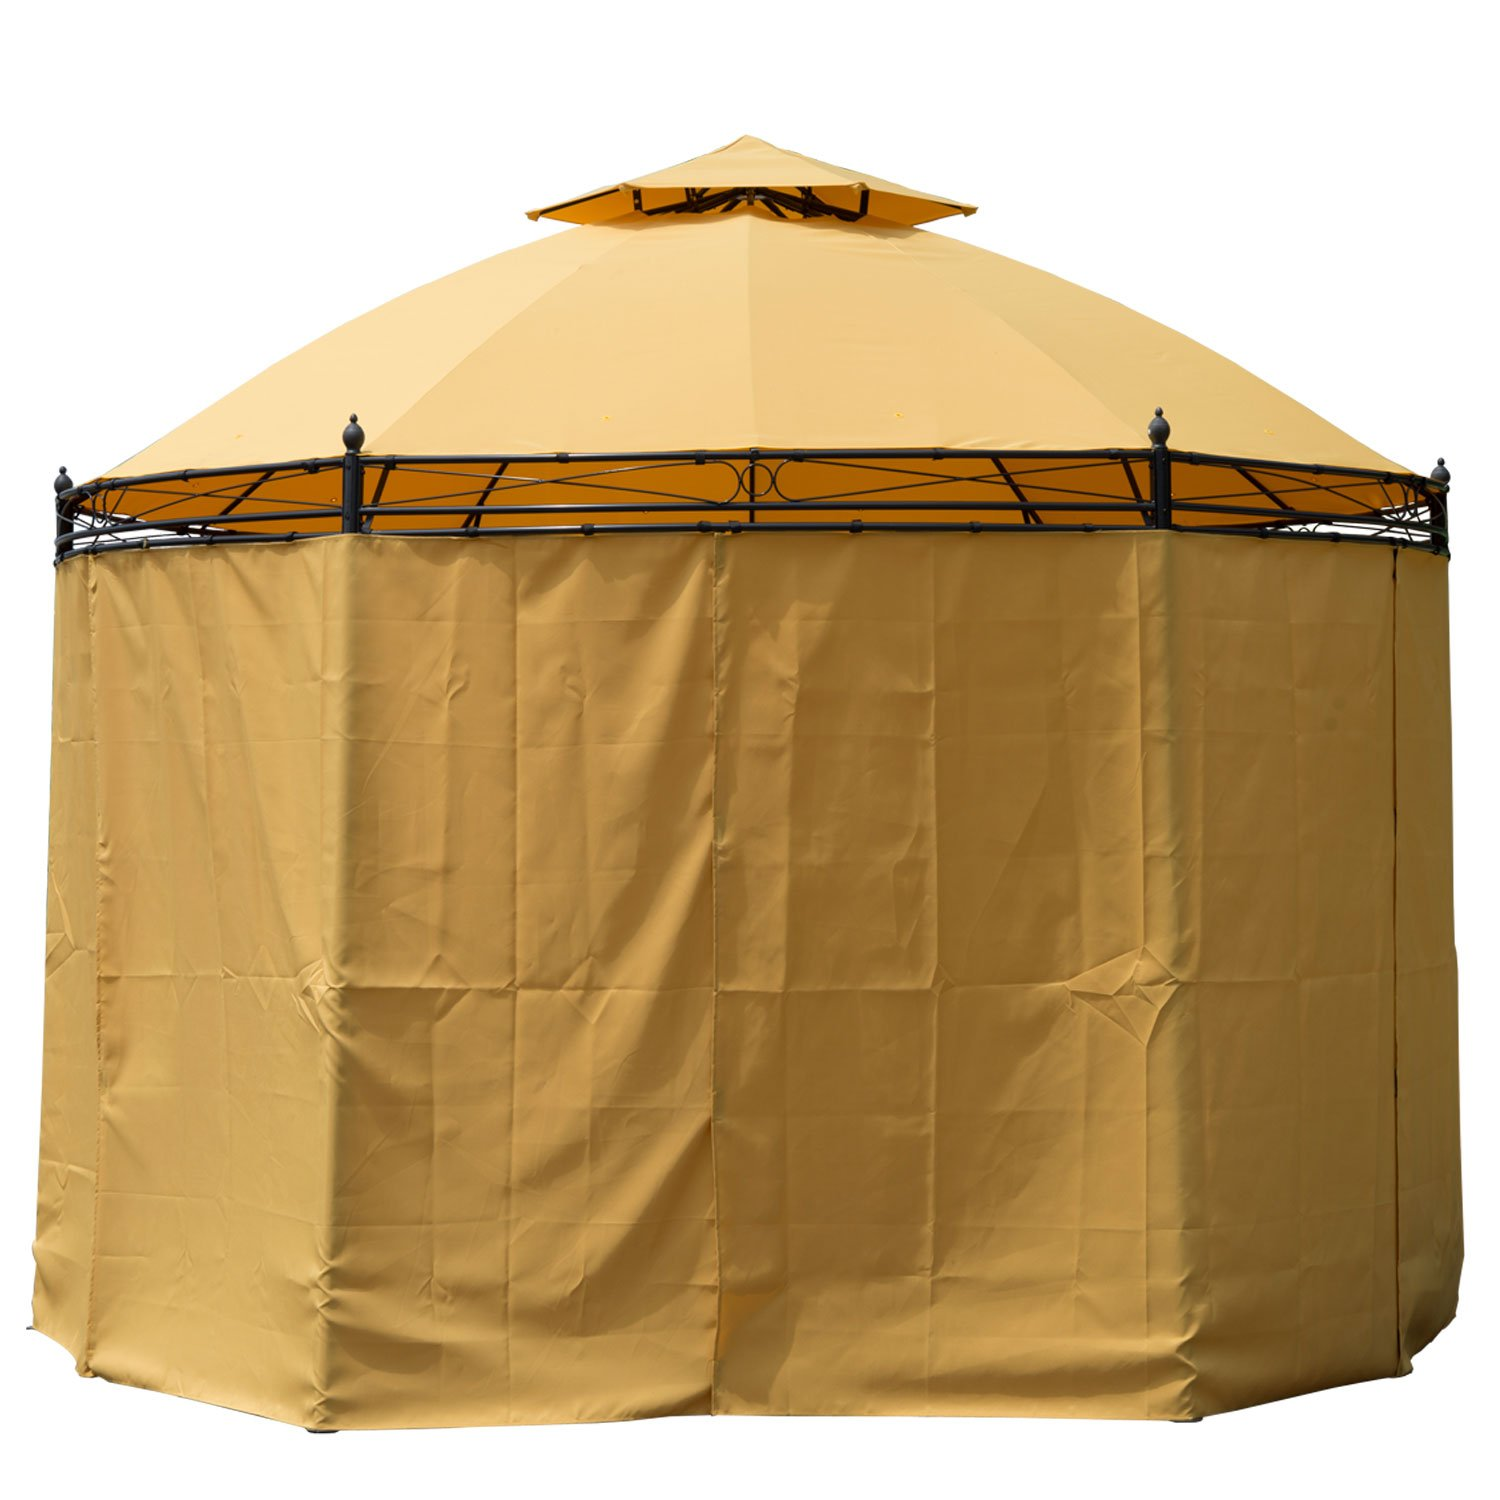 Amazon.com : Outsunny Round Outdoor Patio Canopy Party Gazebo With  Curtains, 11 Feet, Orange : Patio, Lawn U0026 Garden